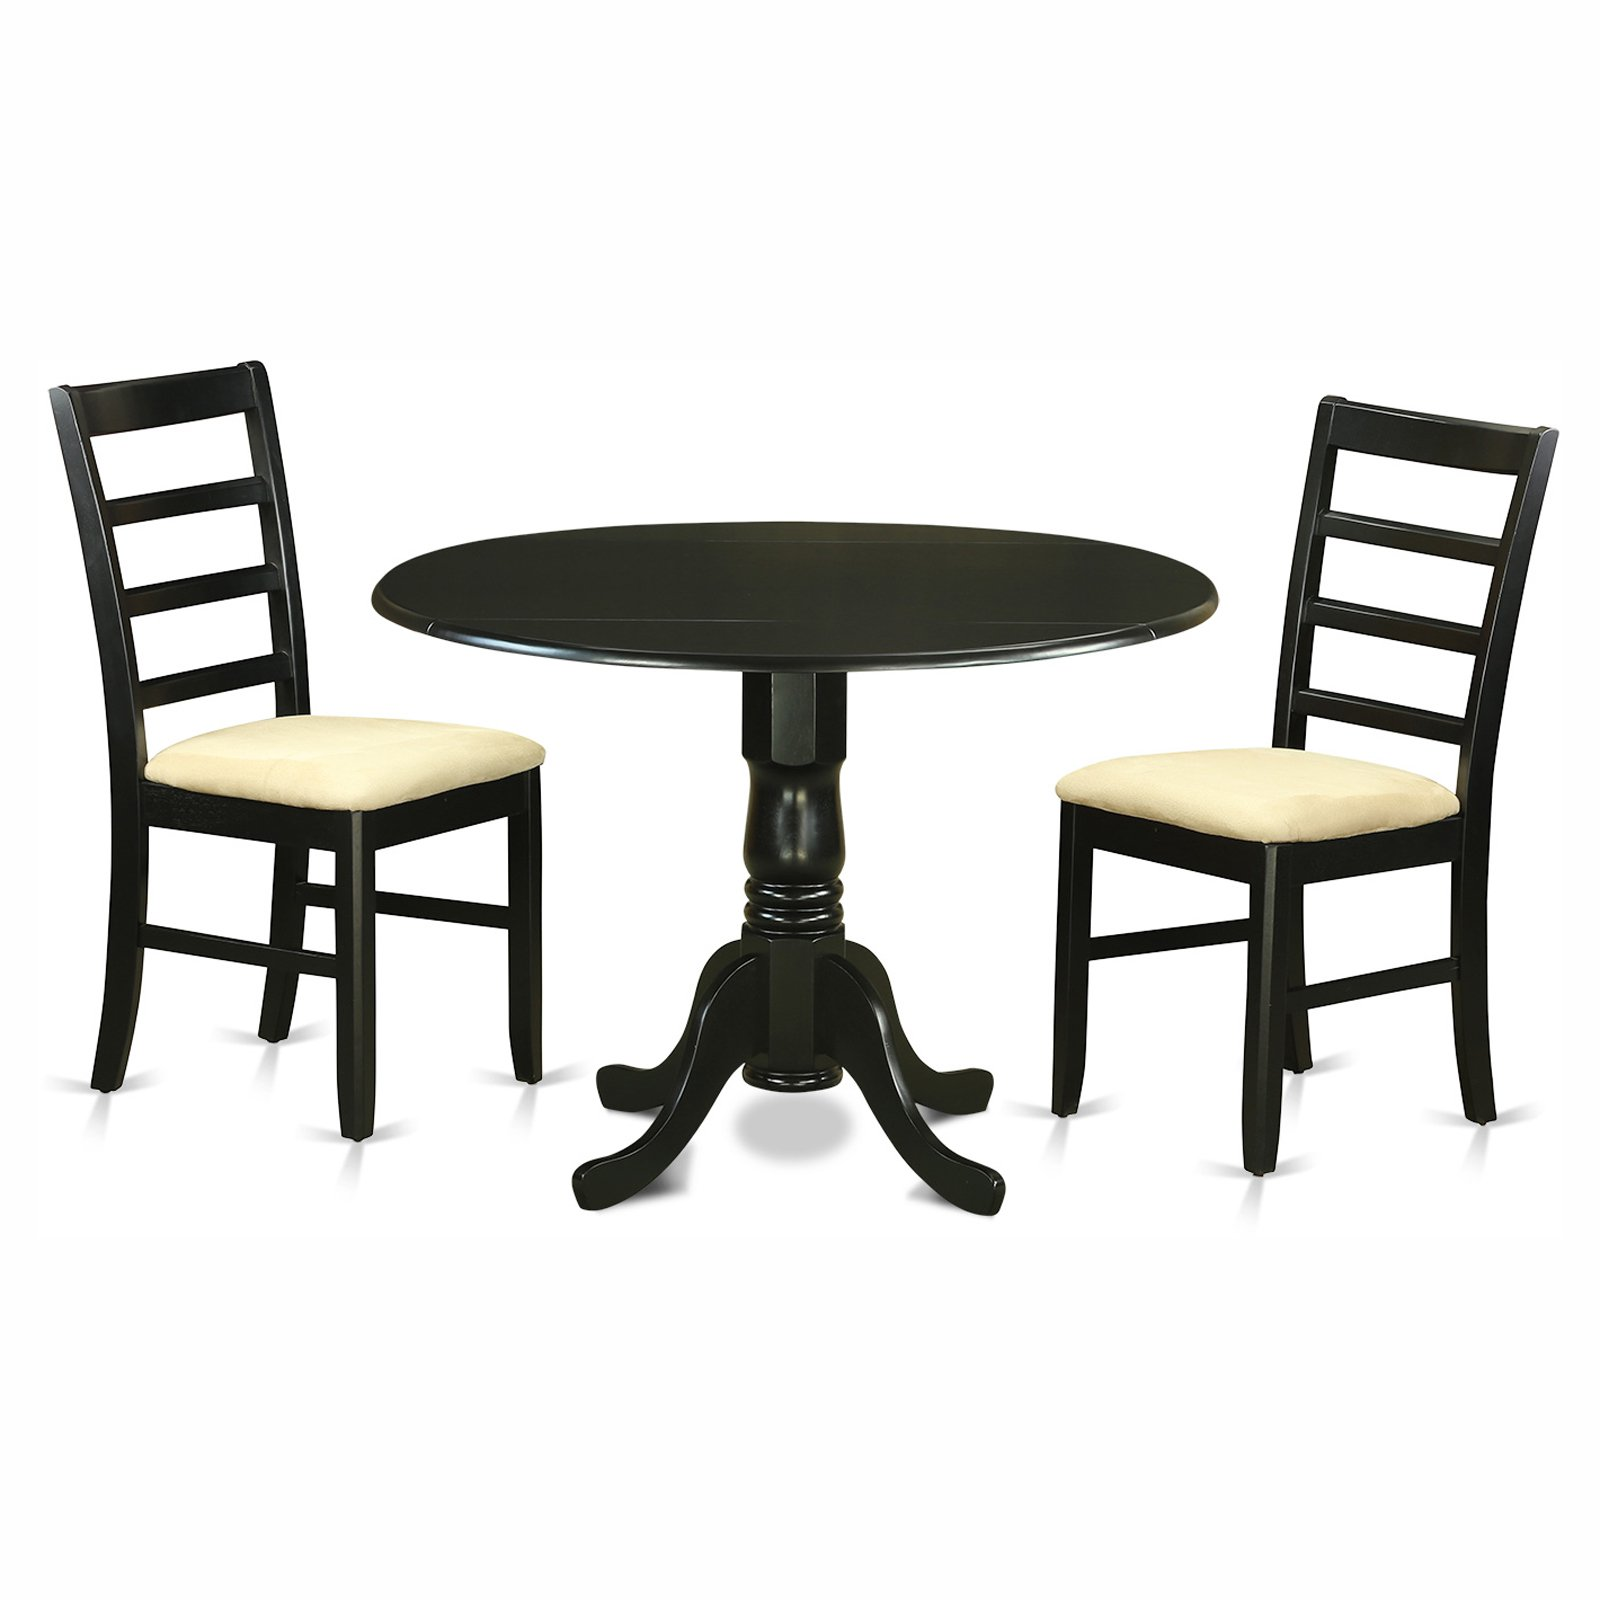 East West Furniture Dublin 3 Piece Drop Leaf Dining Table Set with Parfait Microfiber Seat Chairs